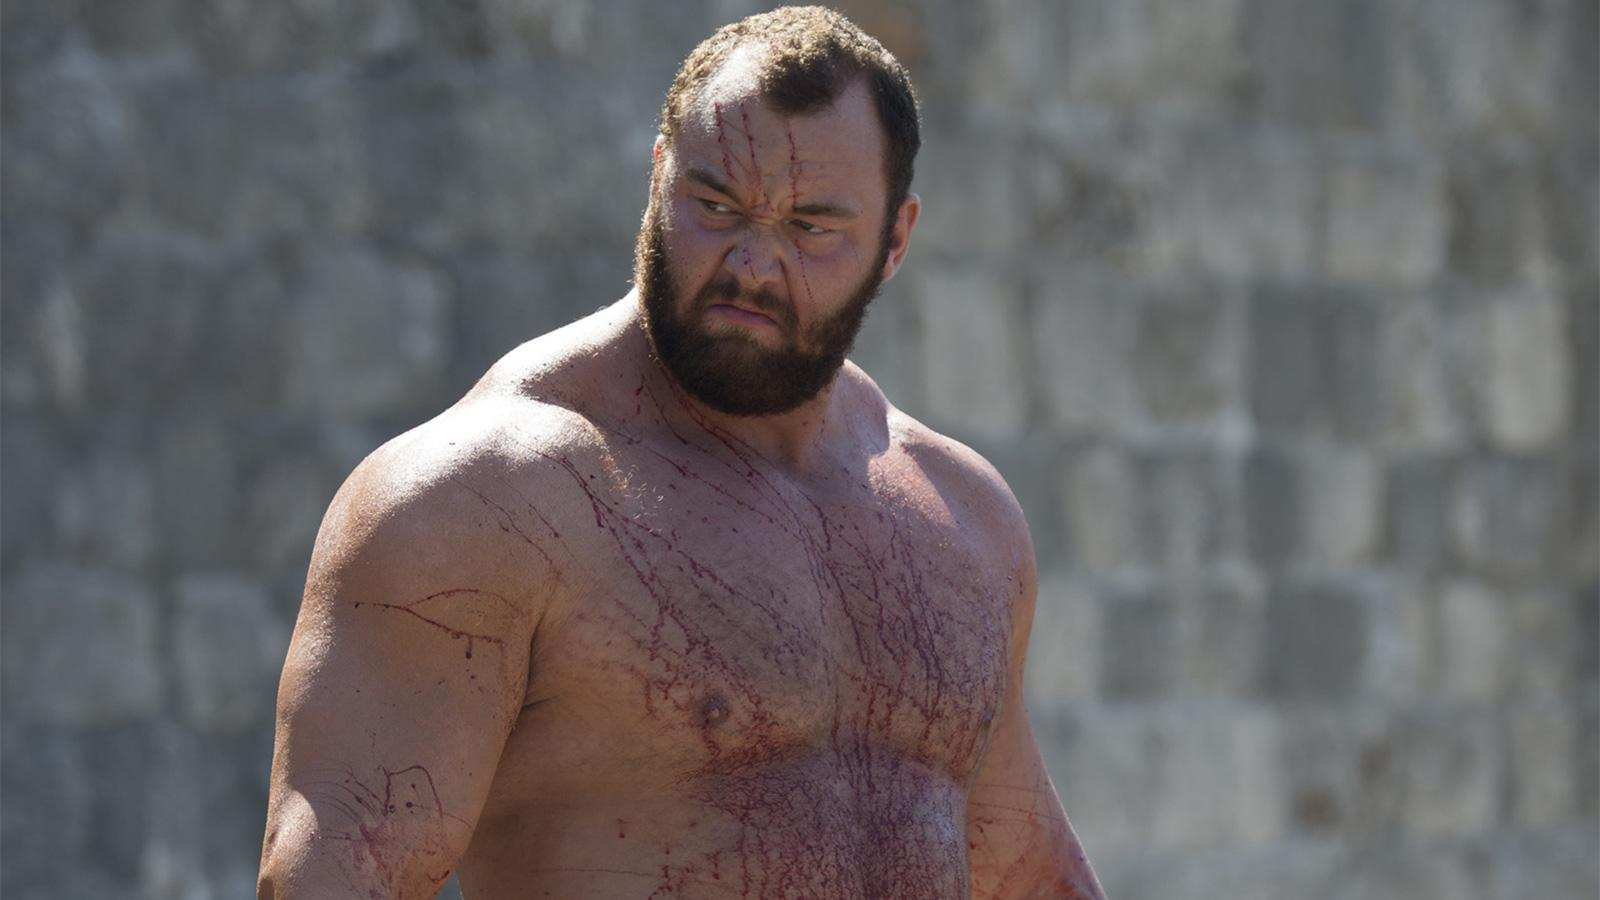 Game of Thrones Gregor Clegane